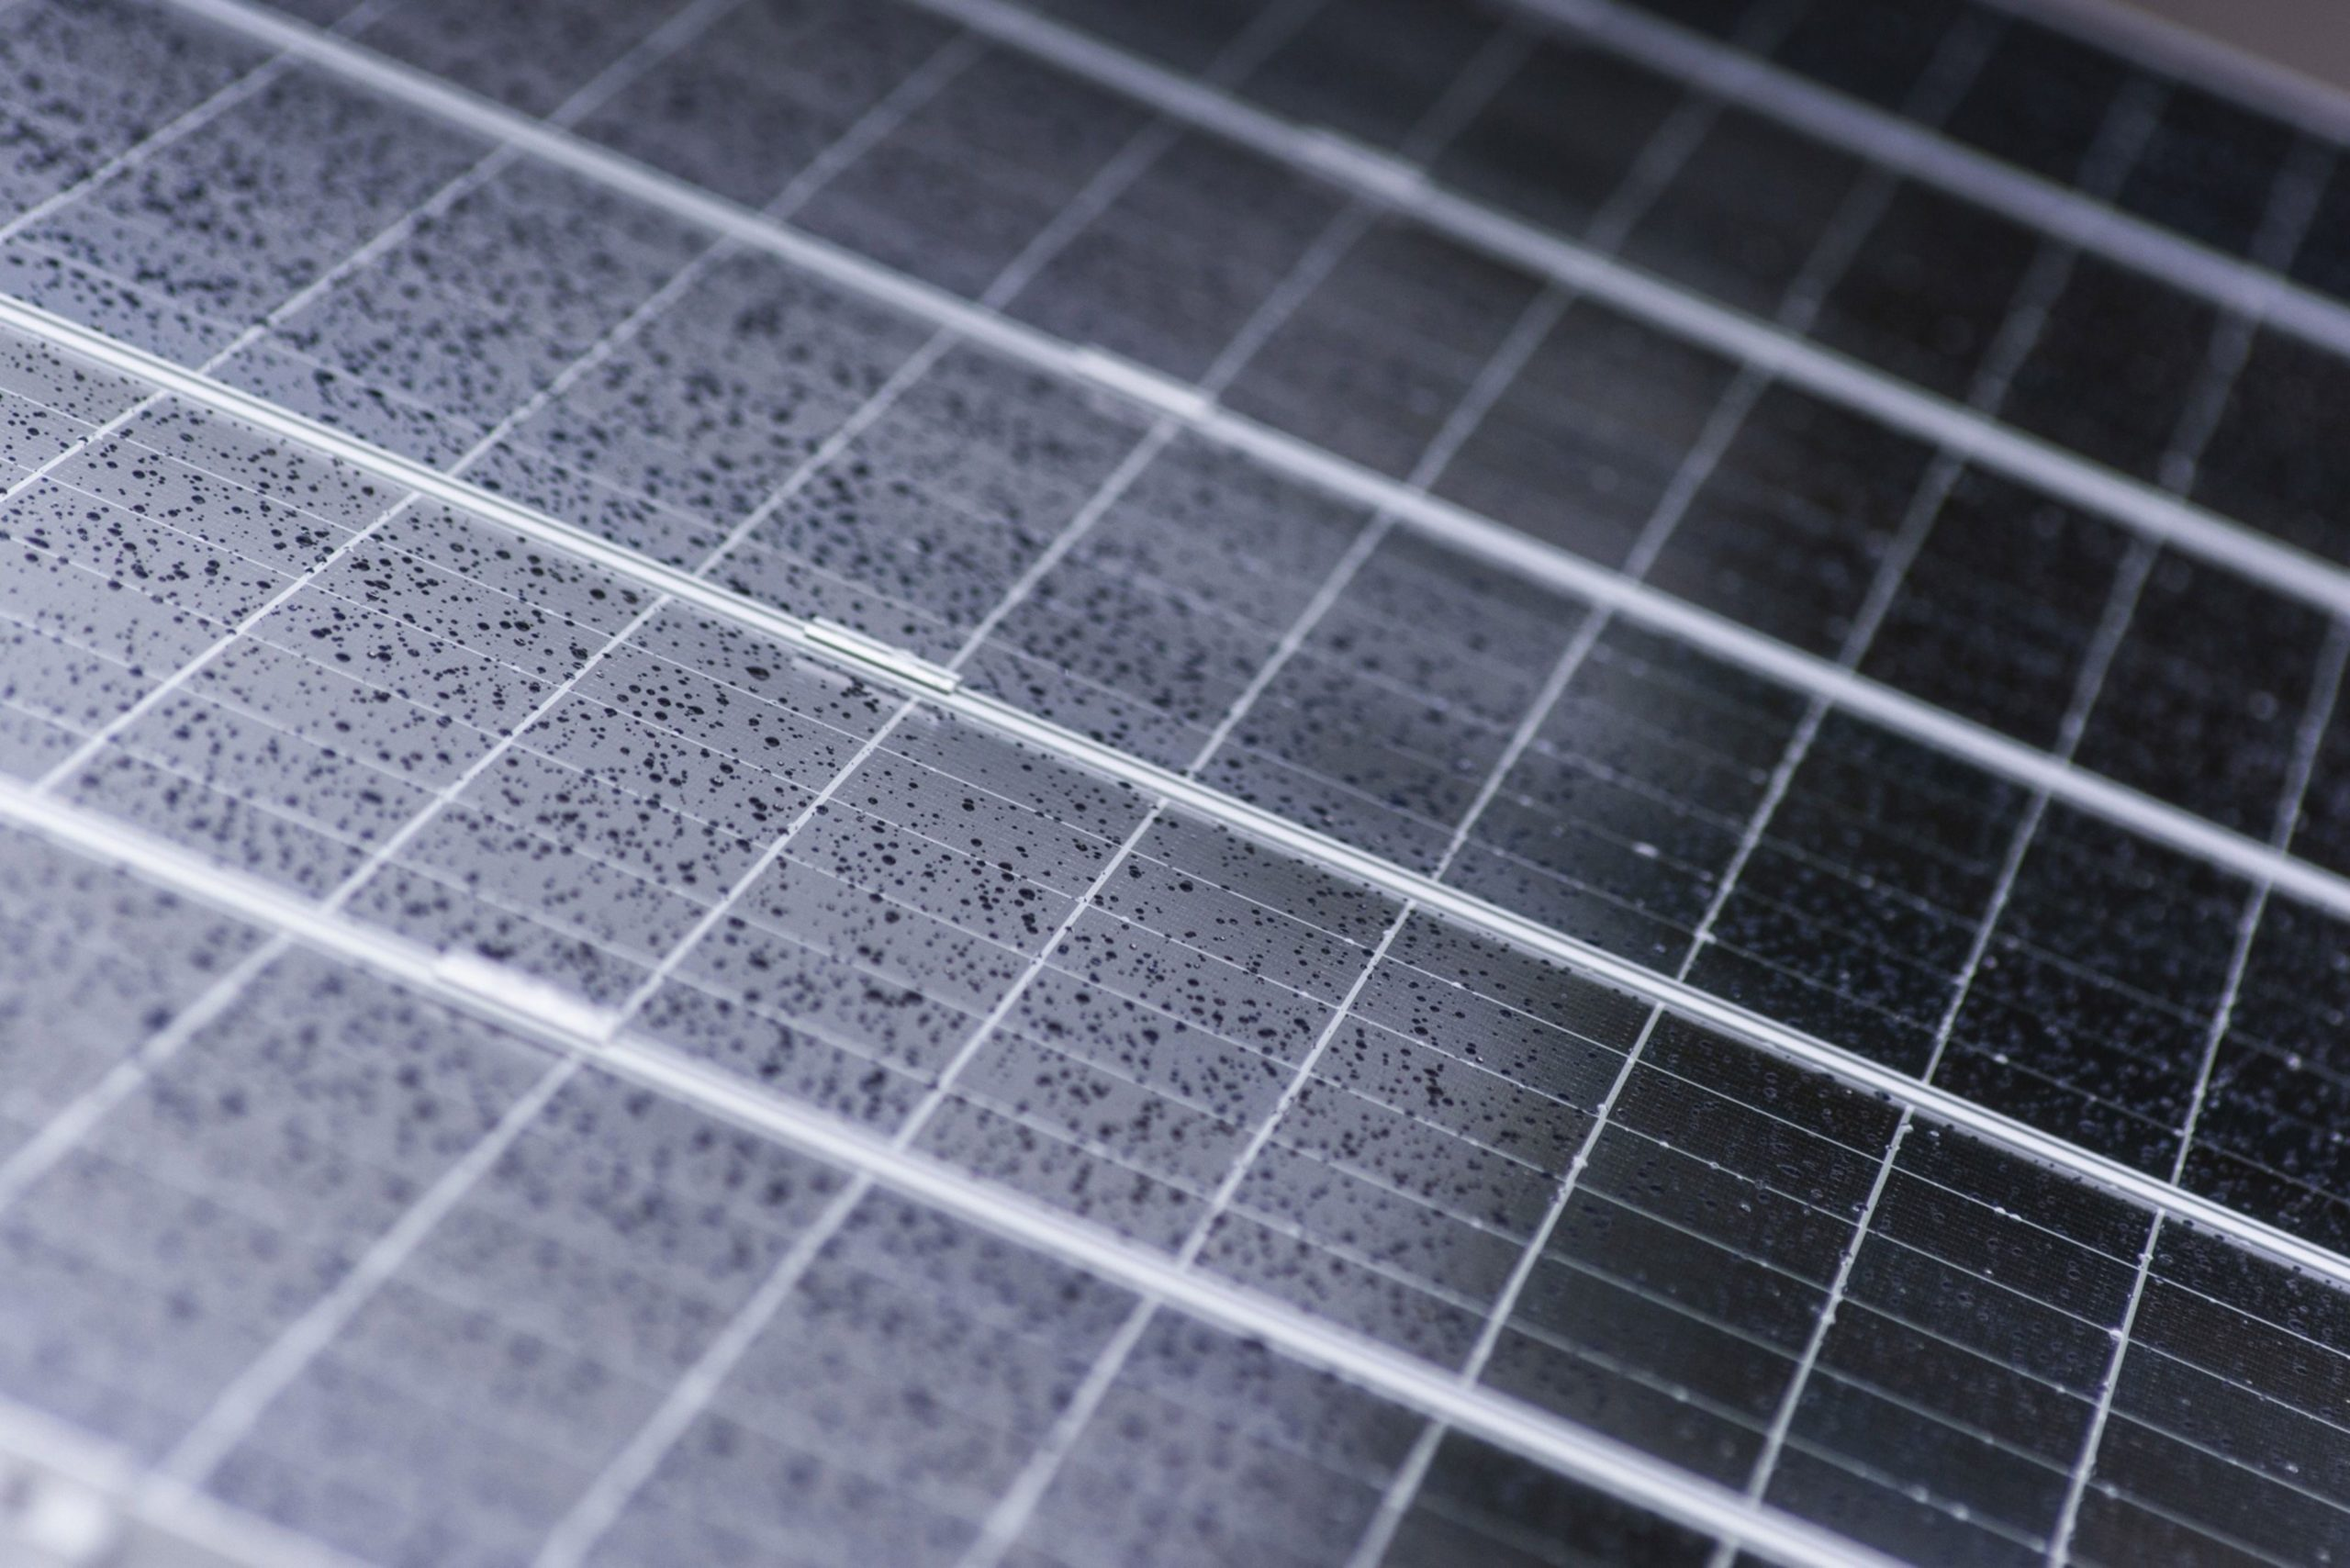 Rain droplets cover solar panels installed on the roof of a residential property in Johannesburg, South Africa, on Friday, Mar. 13, 2020.